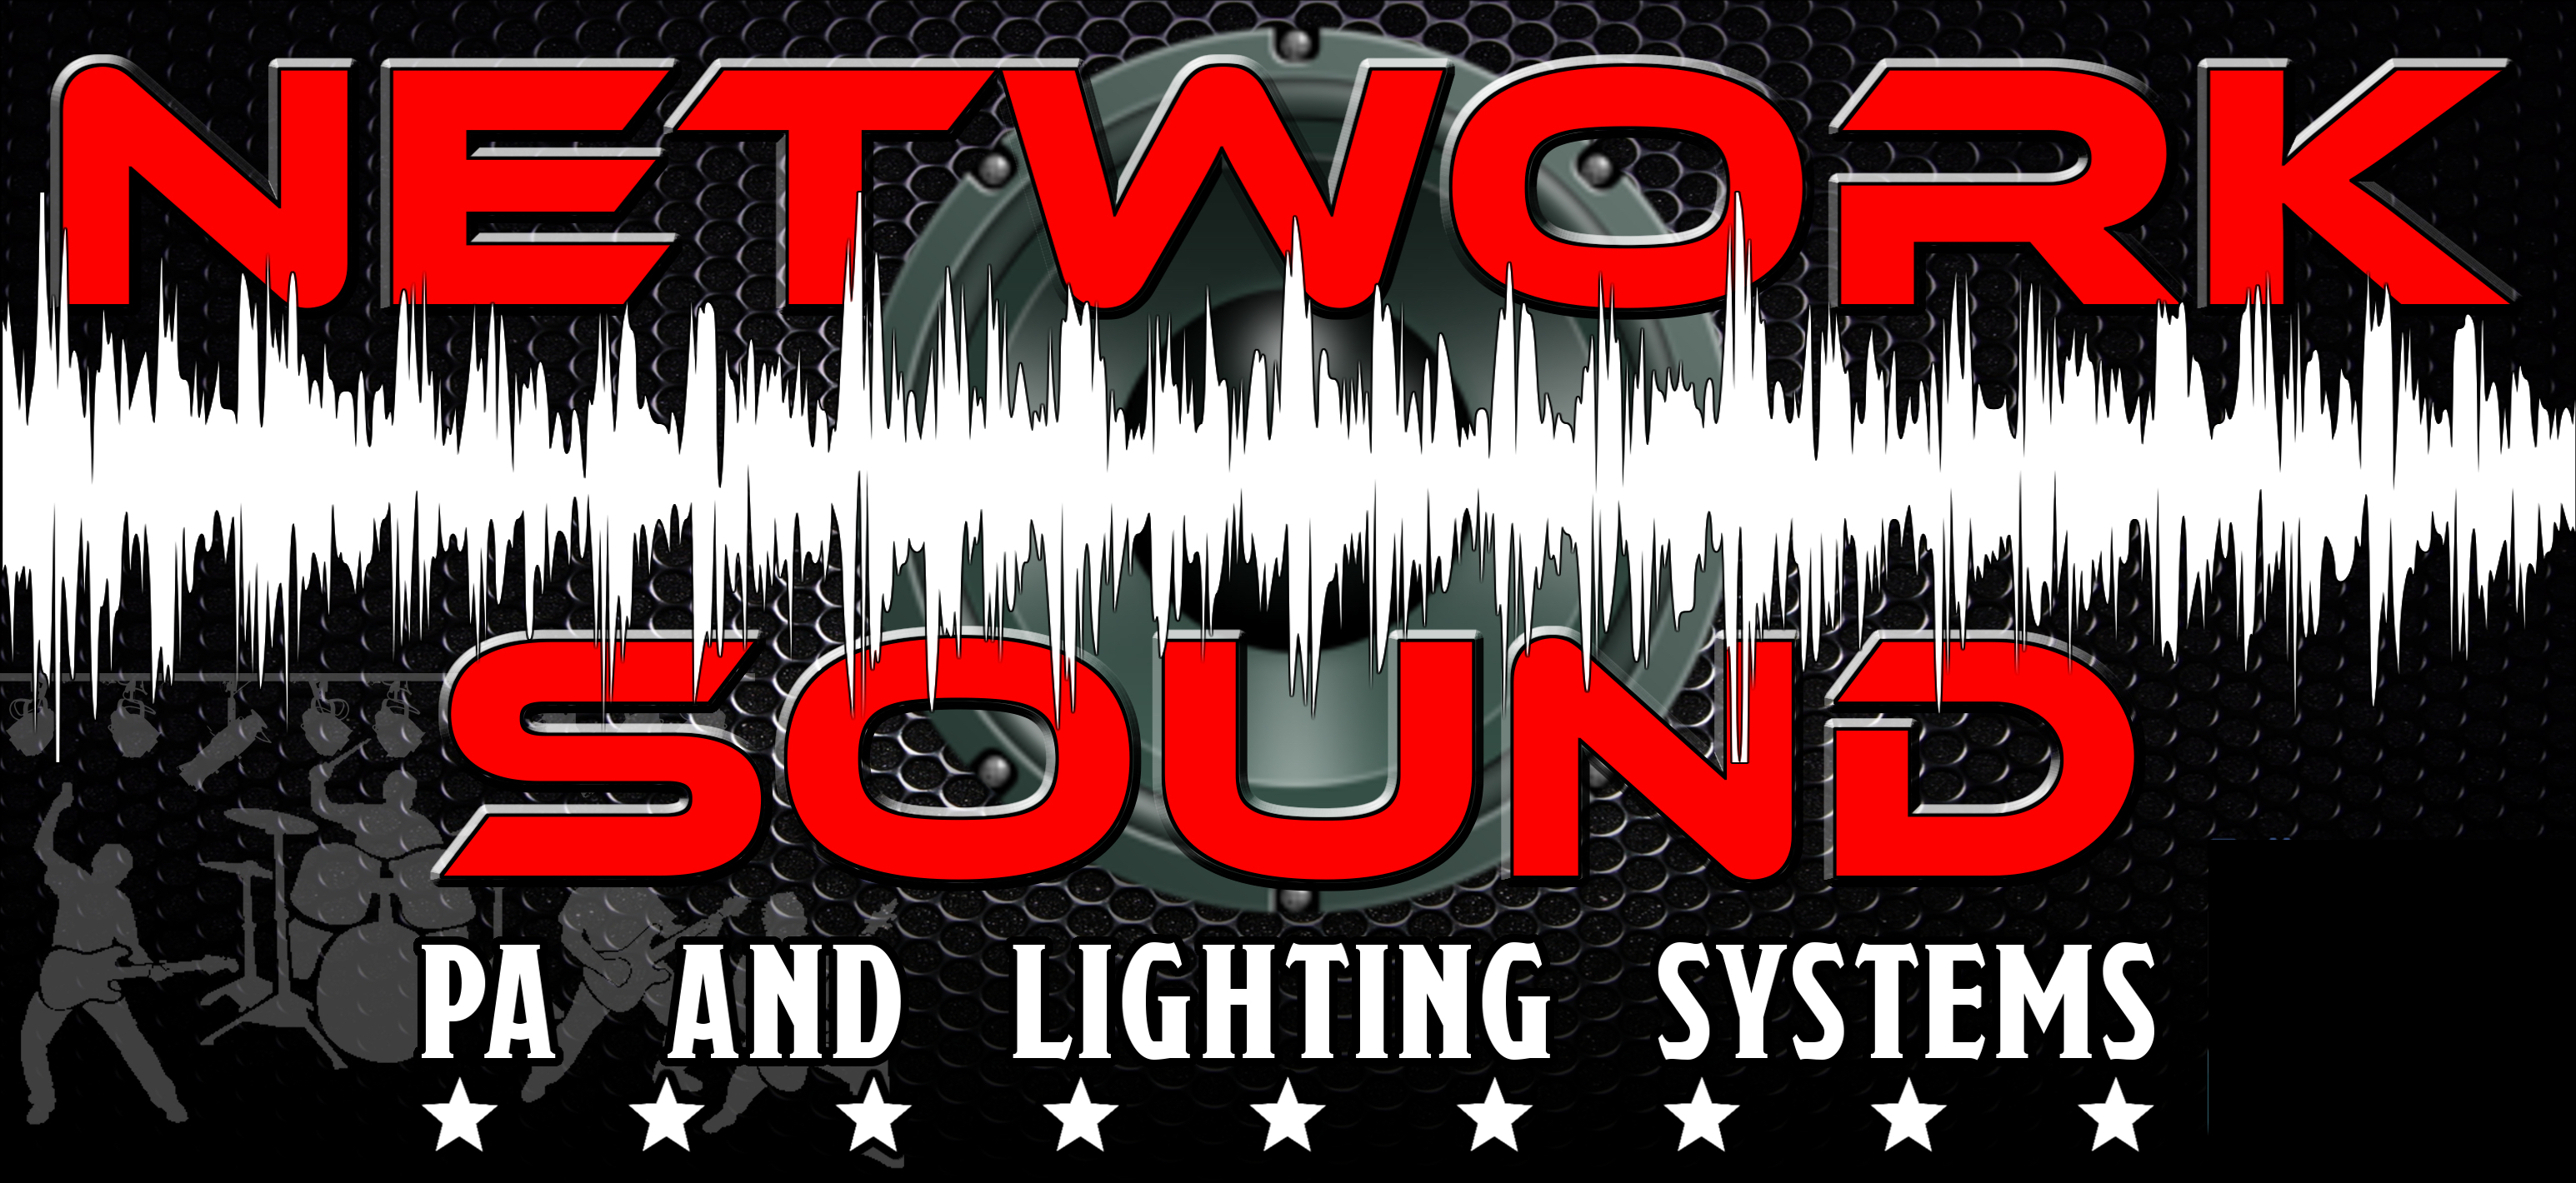 Networksoundlogo